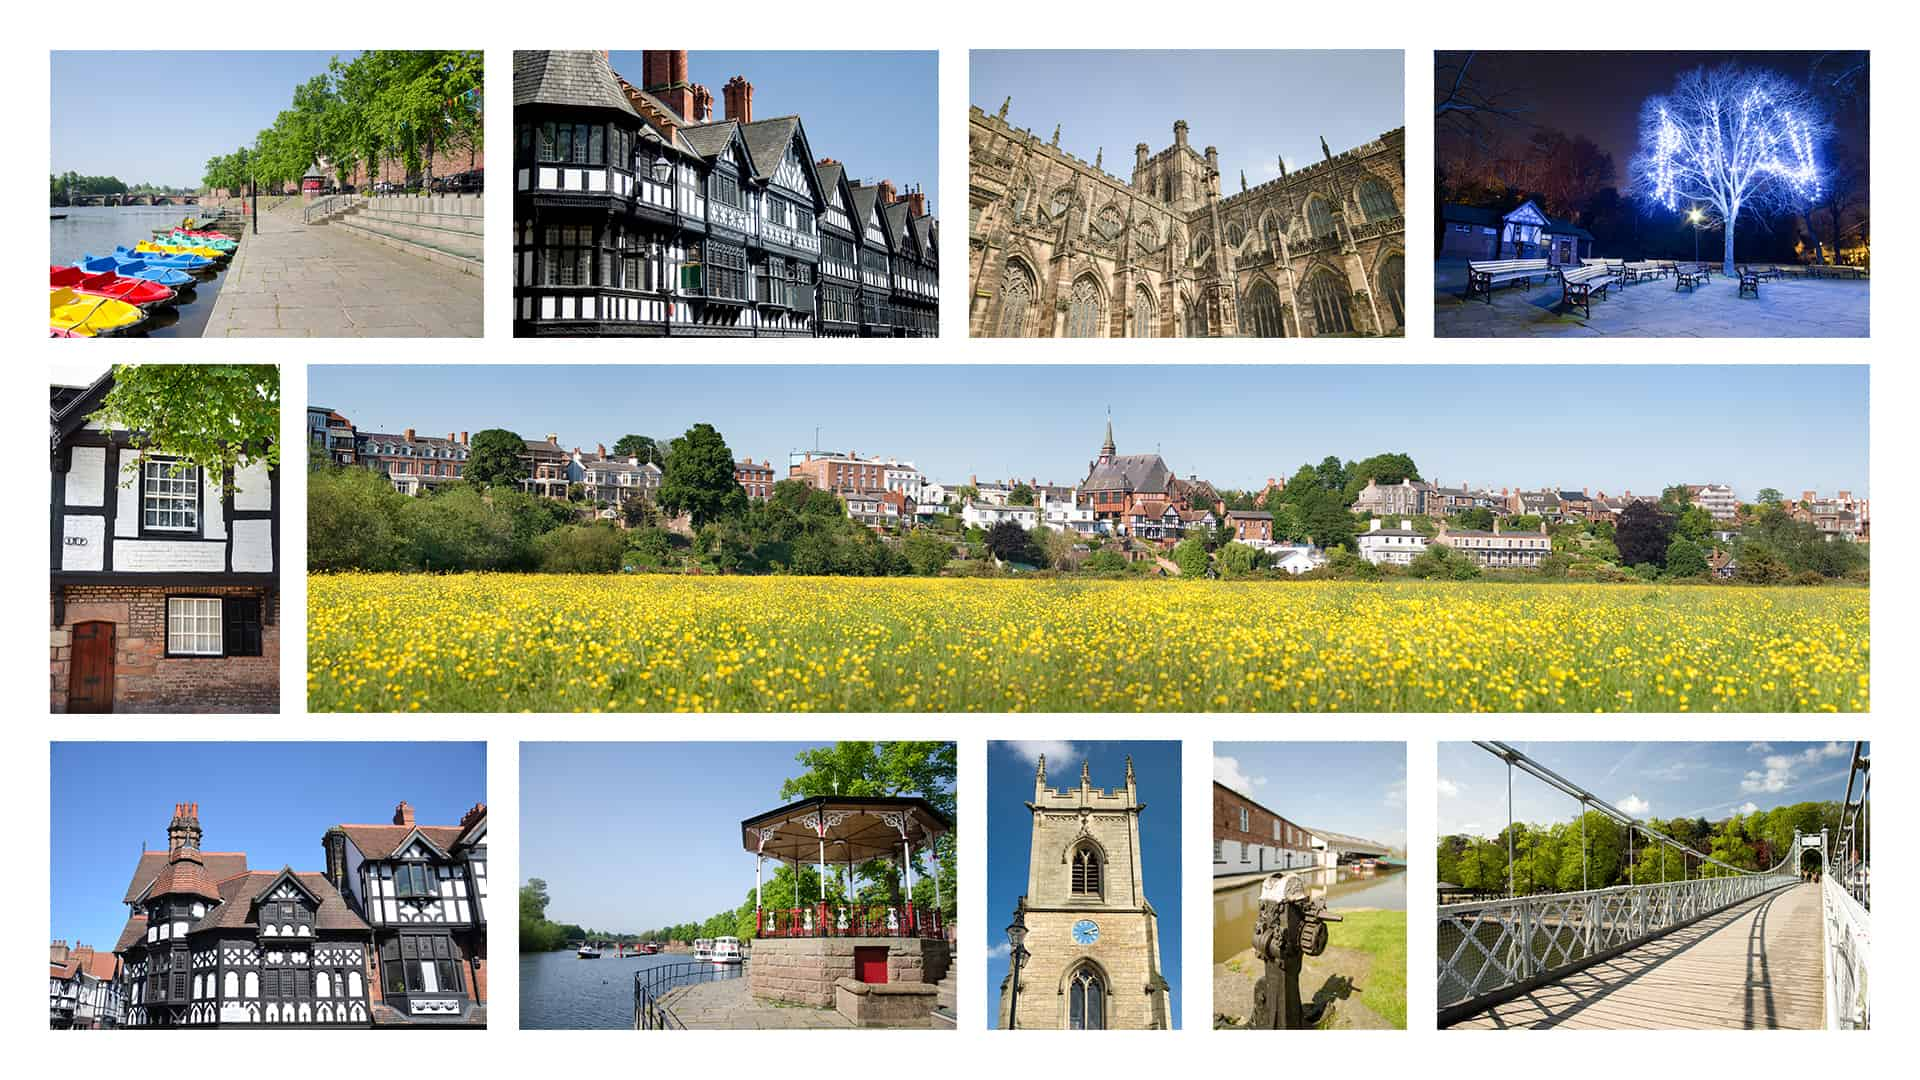 Chester travel photography on iStockphoto